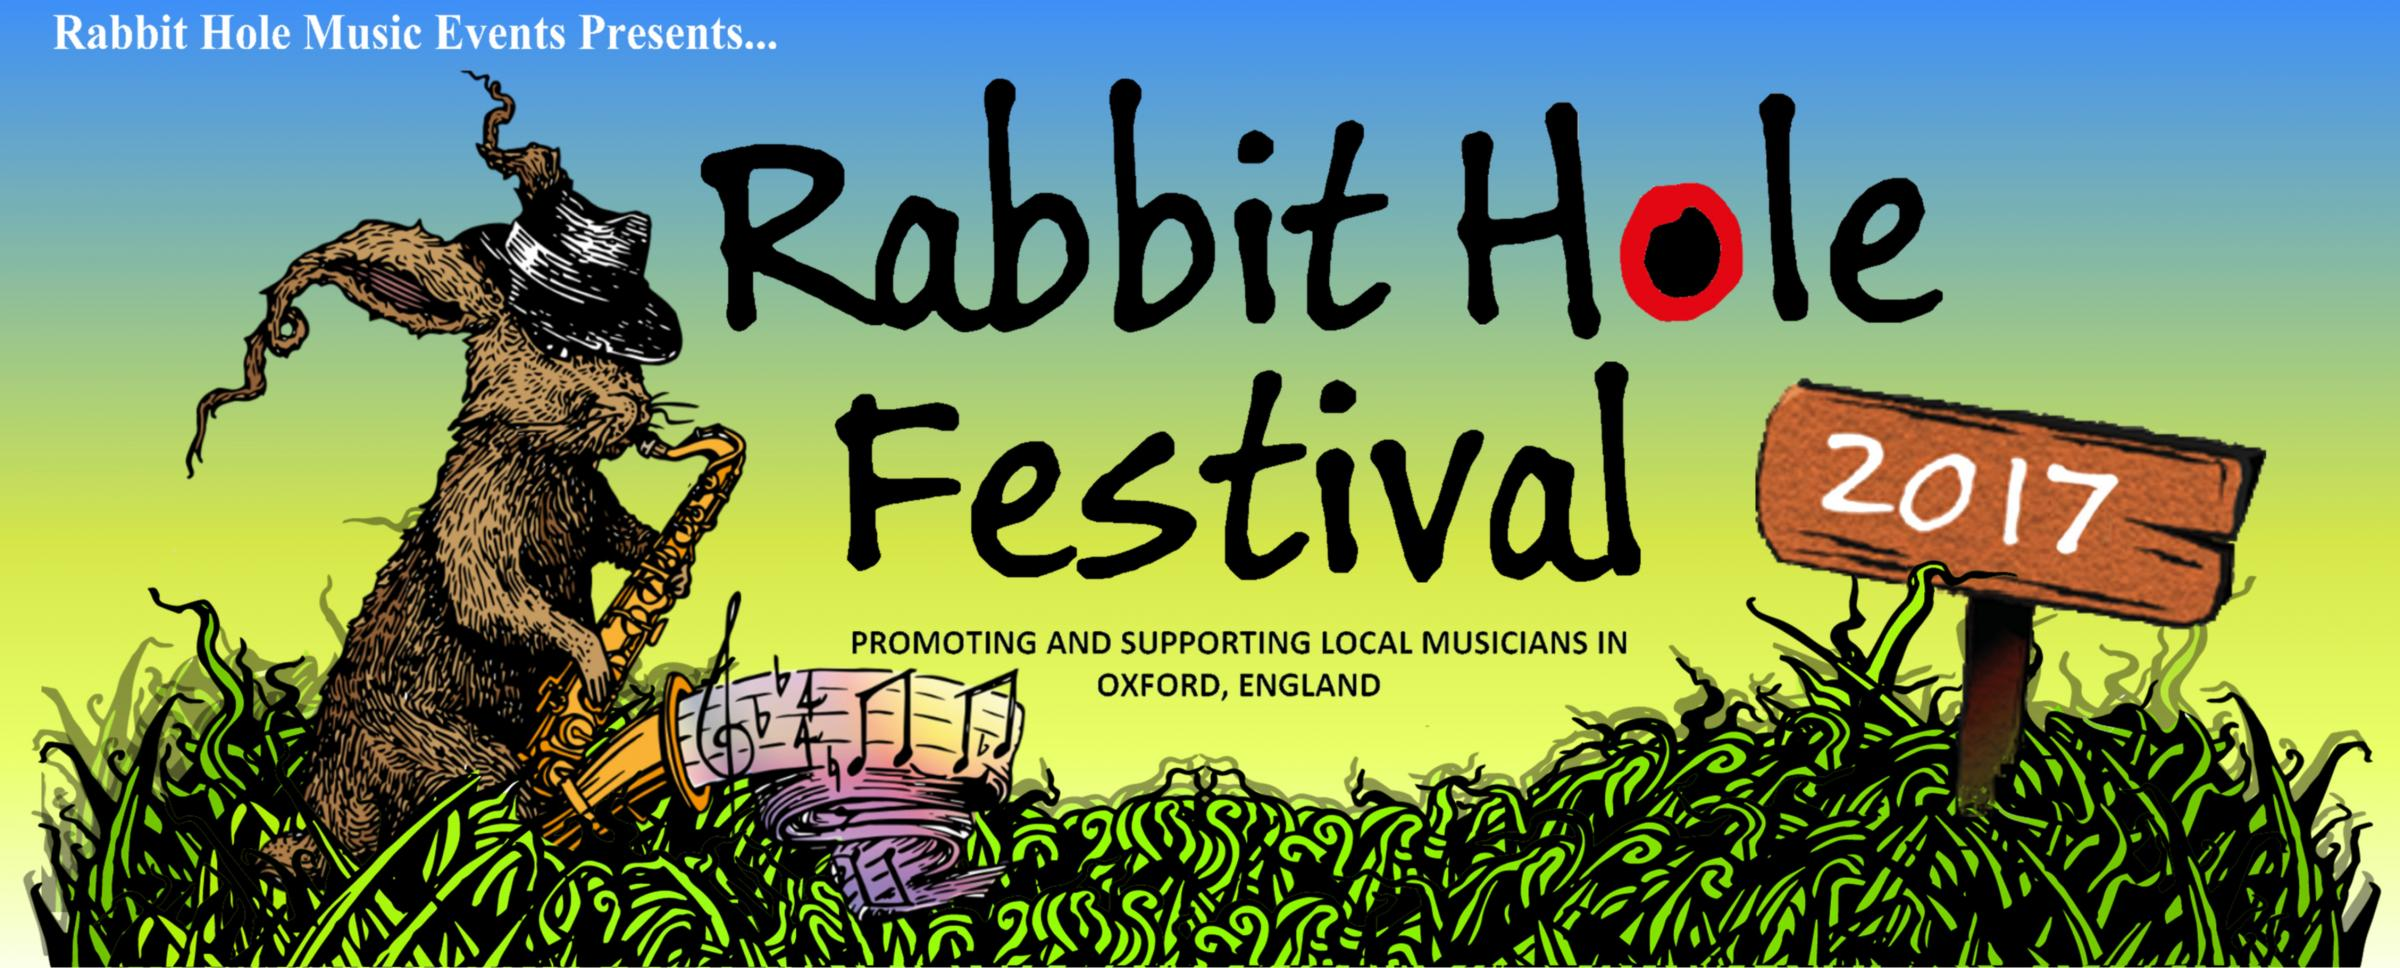 Oxford Rabbit Hole Festival